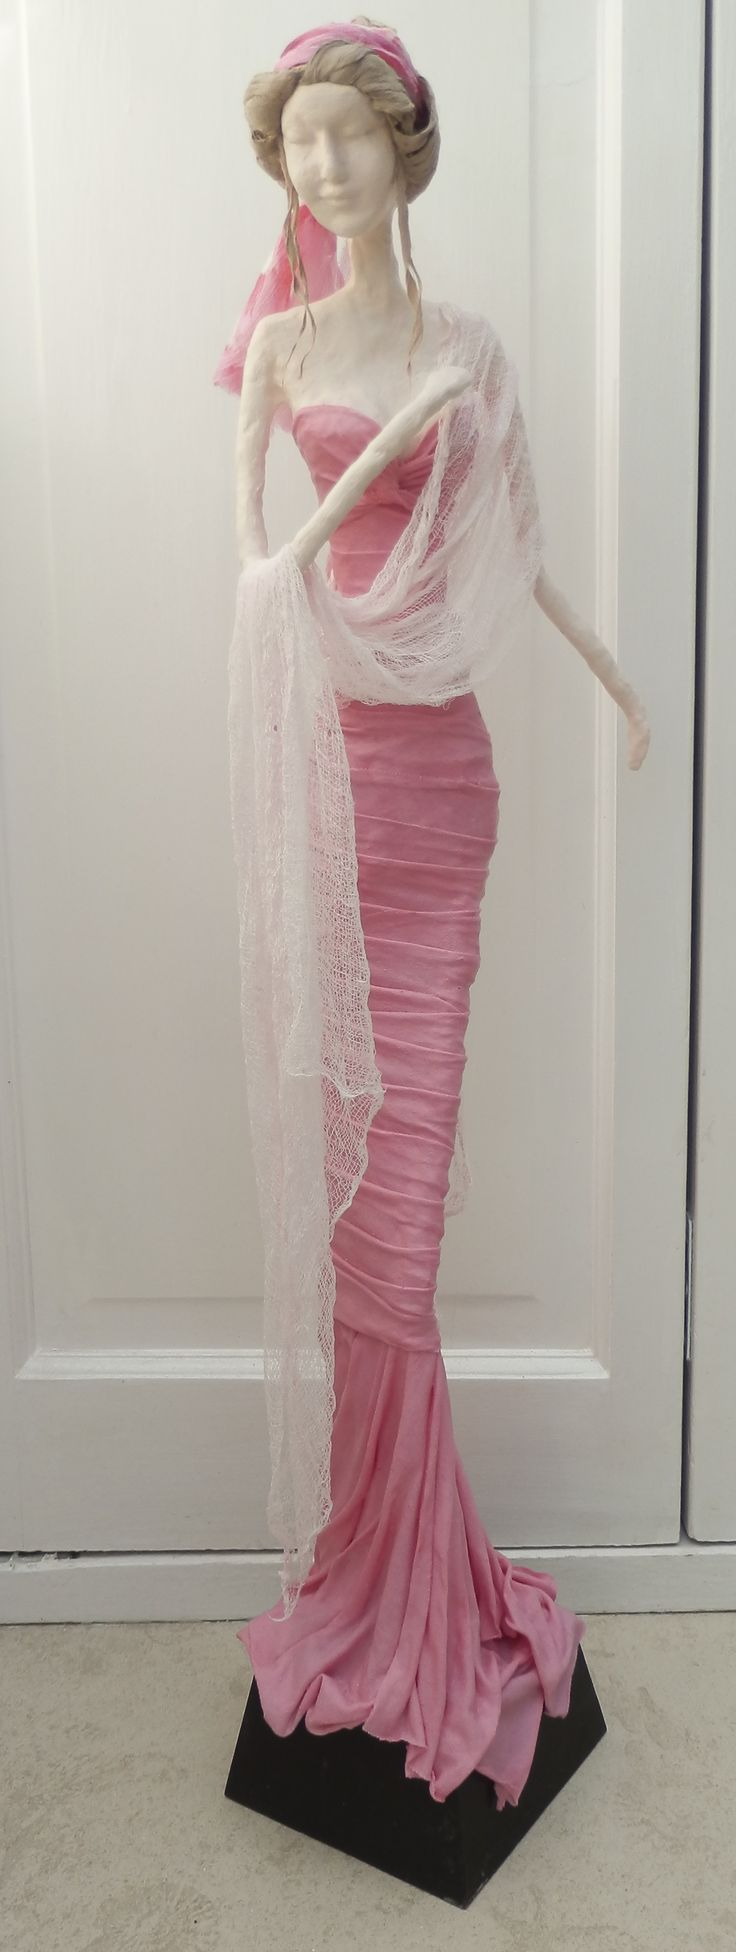 Artist Sandra Raby : Giselle is a work in progress fabric sculpture.